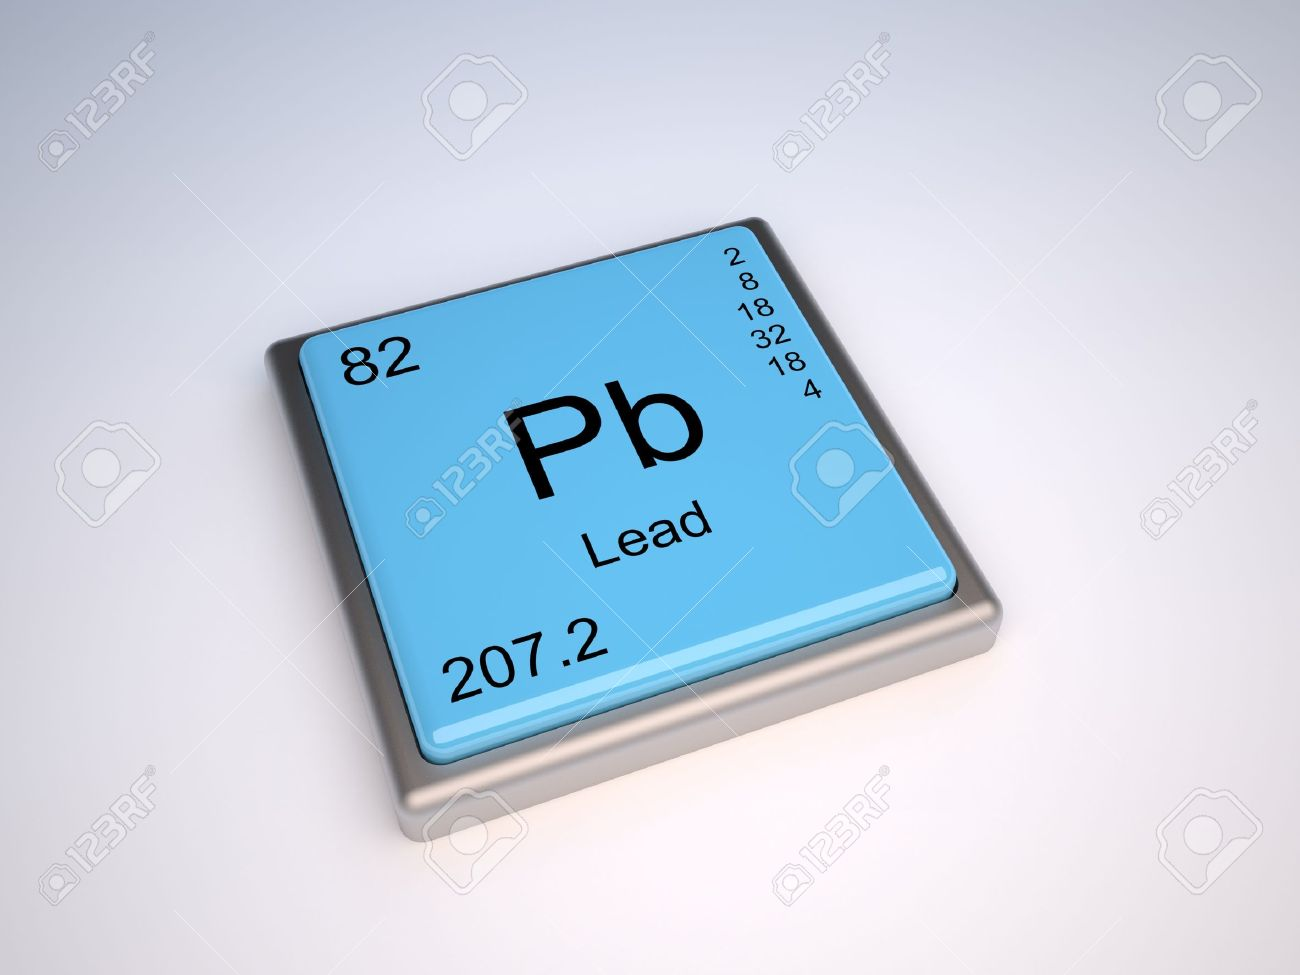 lead chemical element of the periodic table with symbol pb stock photo 10062365 - Periodic Table Symbol Pb